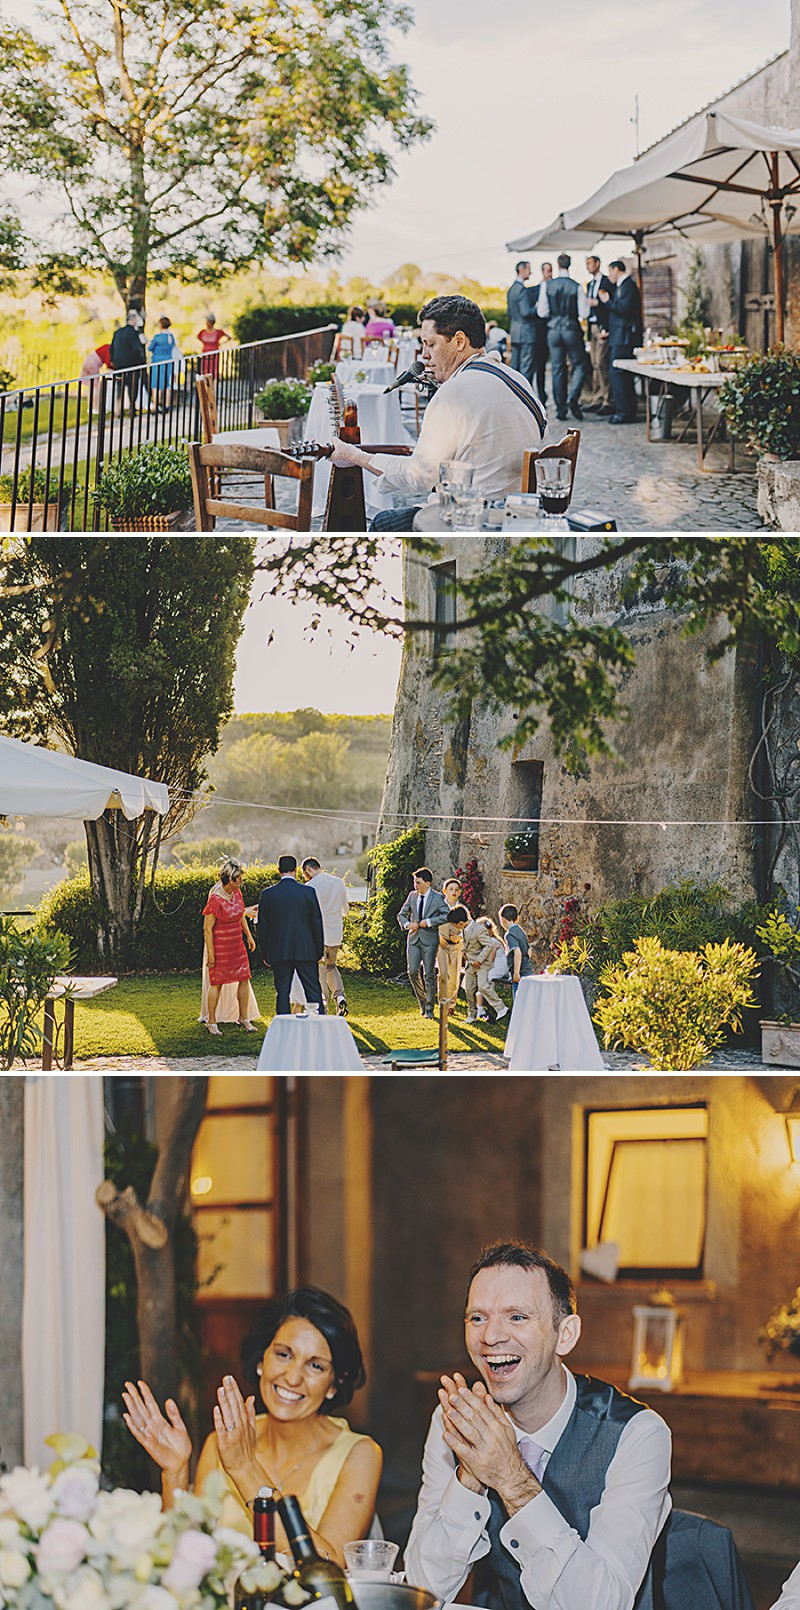 An Italian Destination Wedding At Borgo di Tragliata Near Rome With A Vintage Crotchet Wedding Dress and Sorbet Rose Bouquet Photographed By Mark Pacura._0010